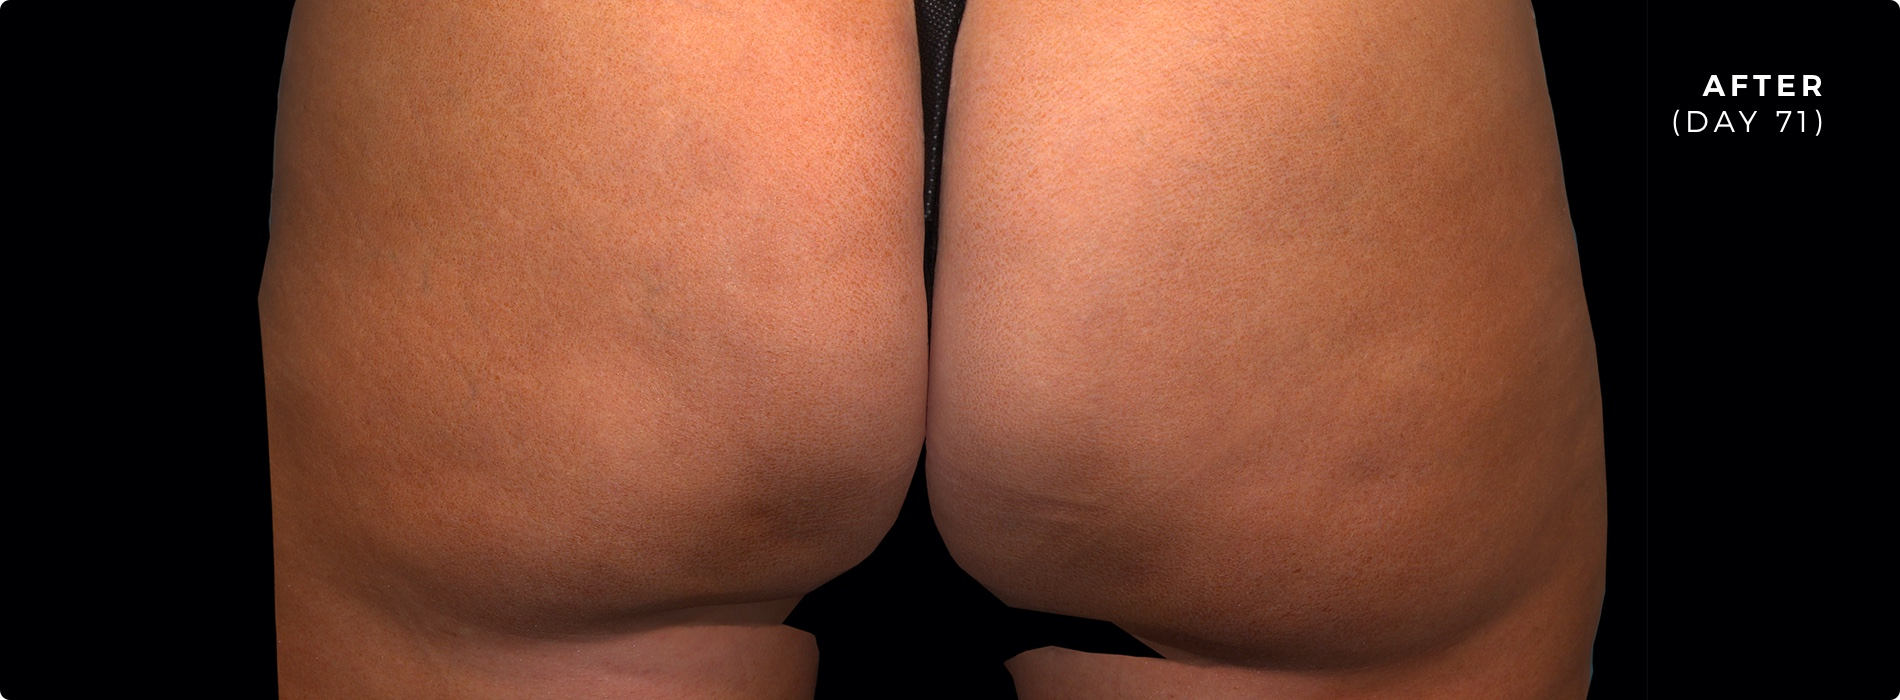 QWO Cellulite Reduction After 1